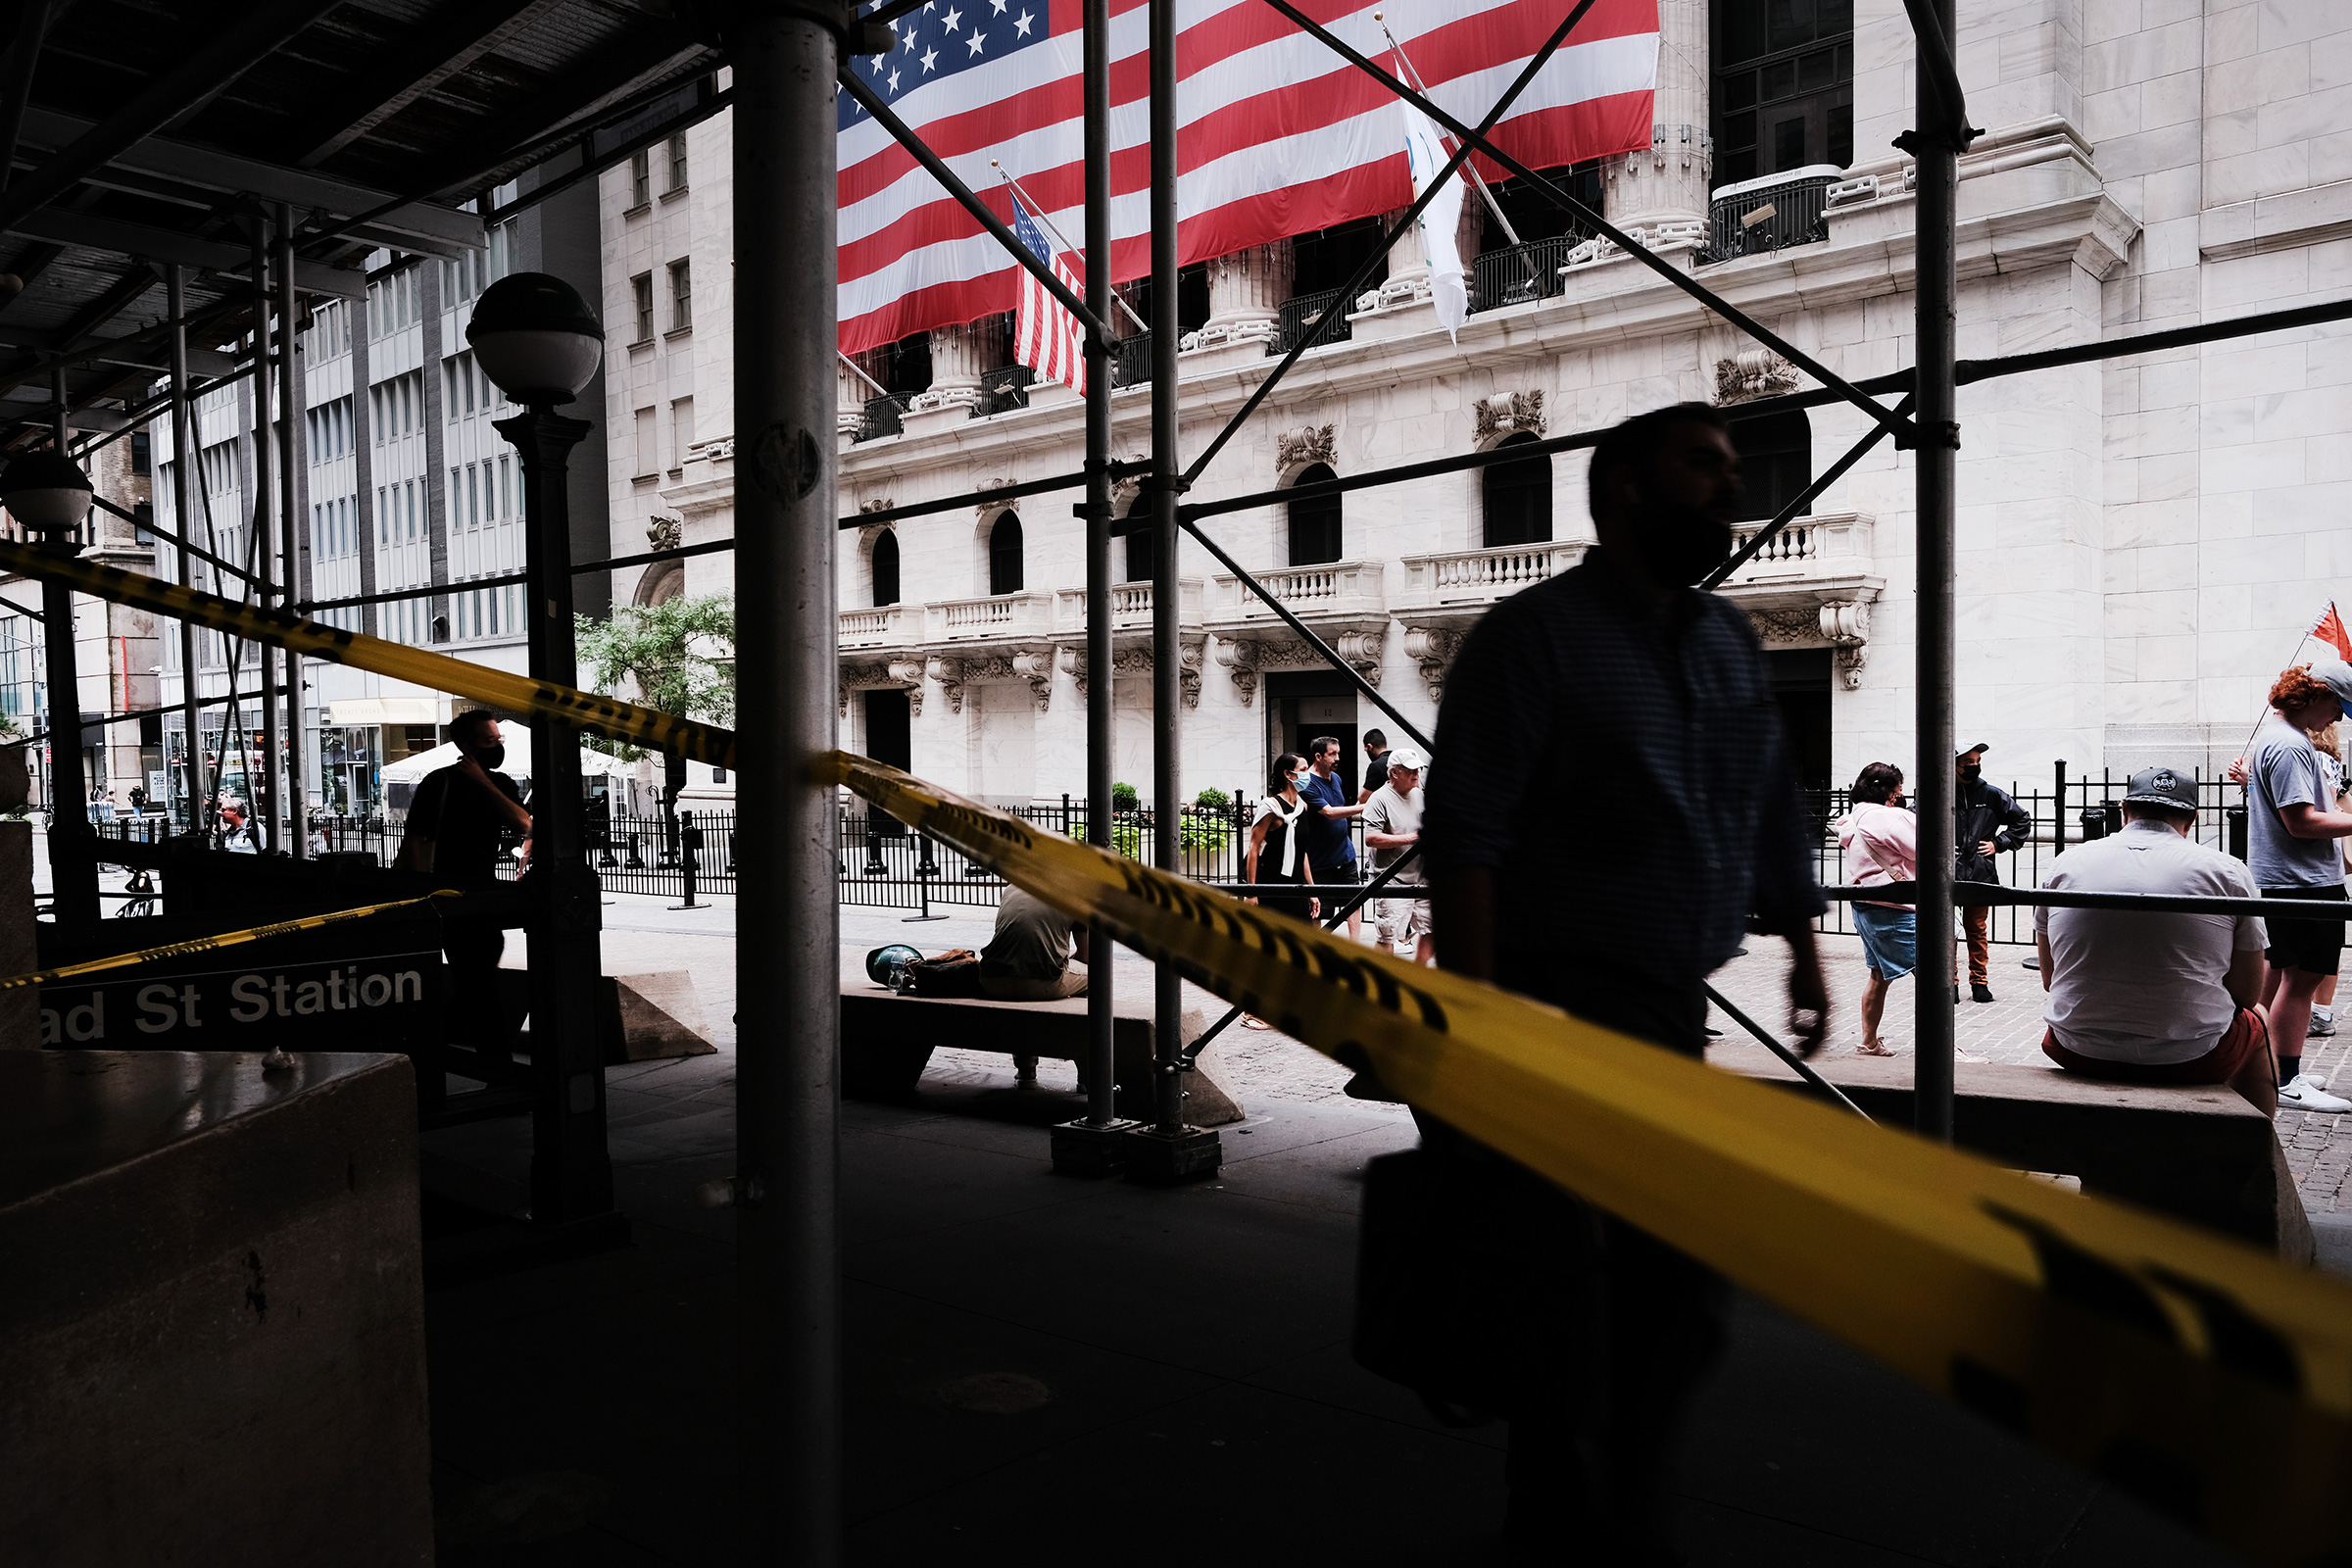 People walk by the New York Stock Exchange in New York City on Aug. 10, 2021